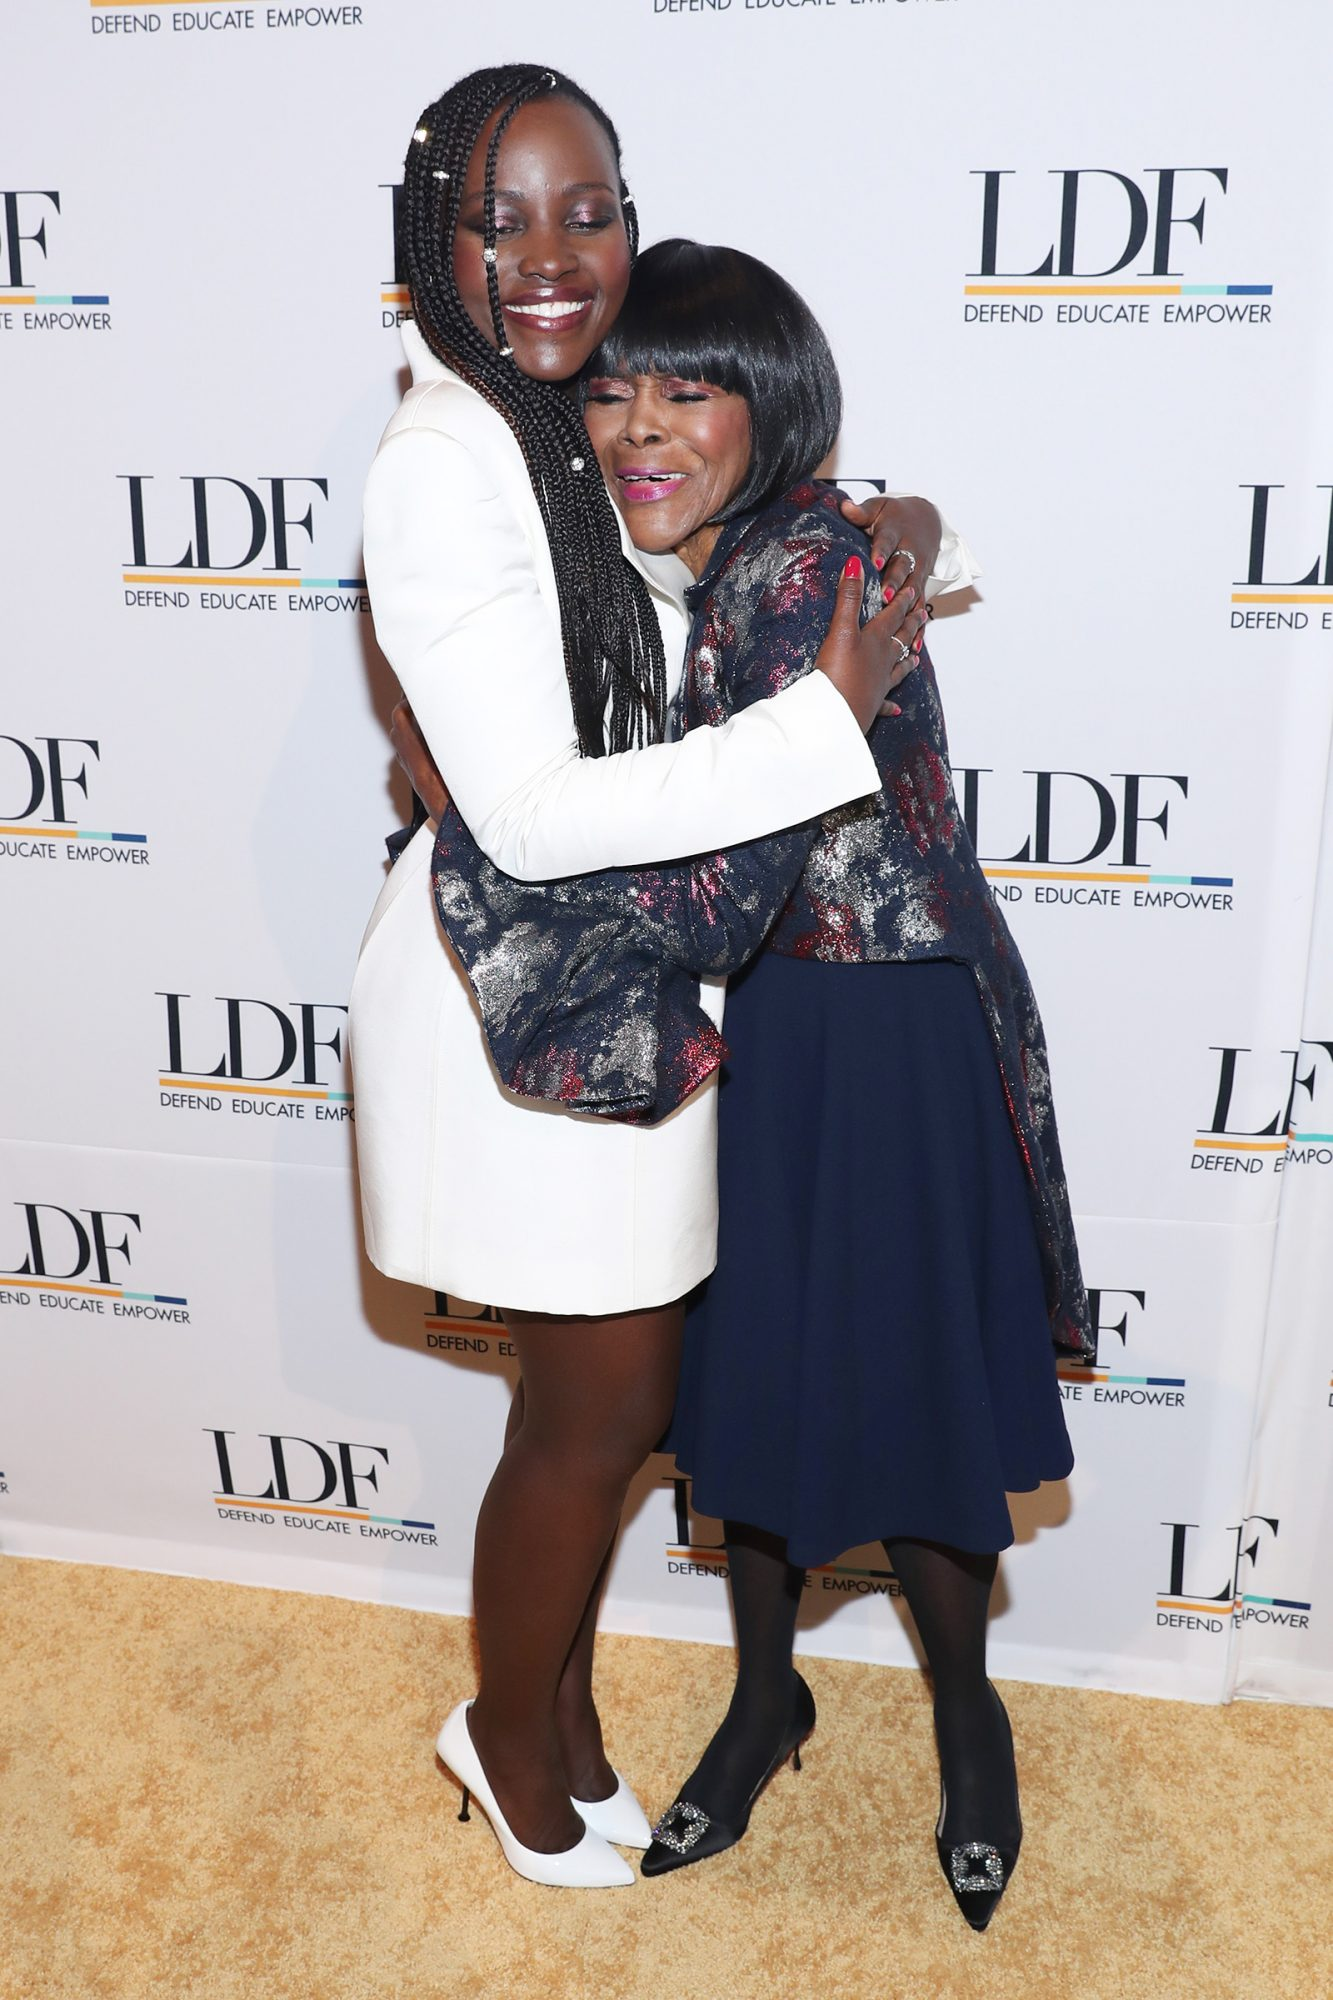 Lupita Nyong'o and Cicely Tyson embrace at the NAACP LDF 33rd National Equal Justice Awards Dinner at Cipriani 42nd Street on November 07, 2019 in New York City